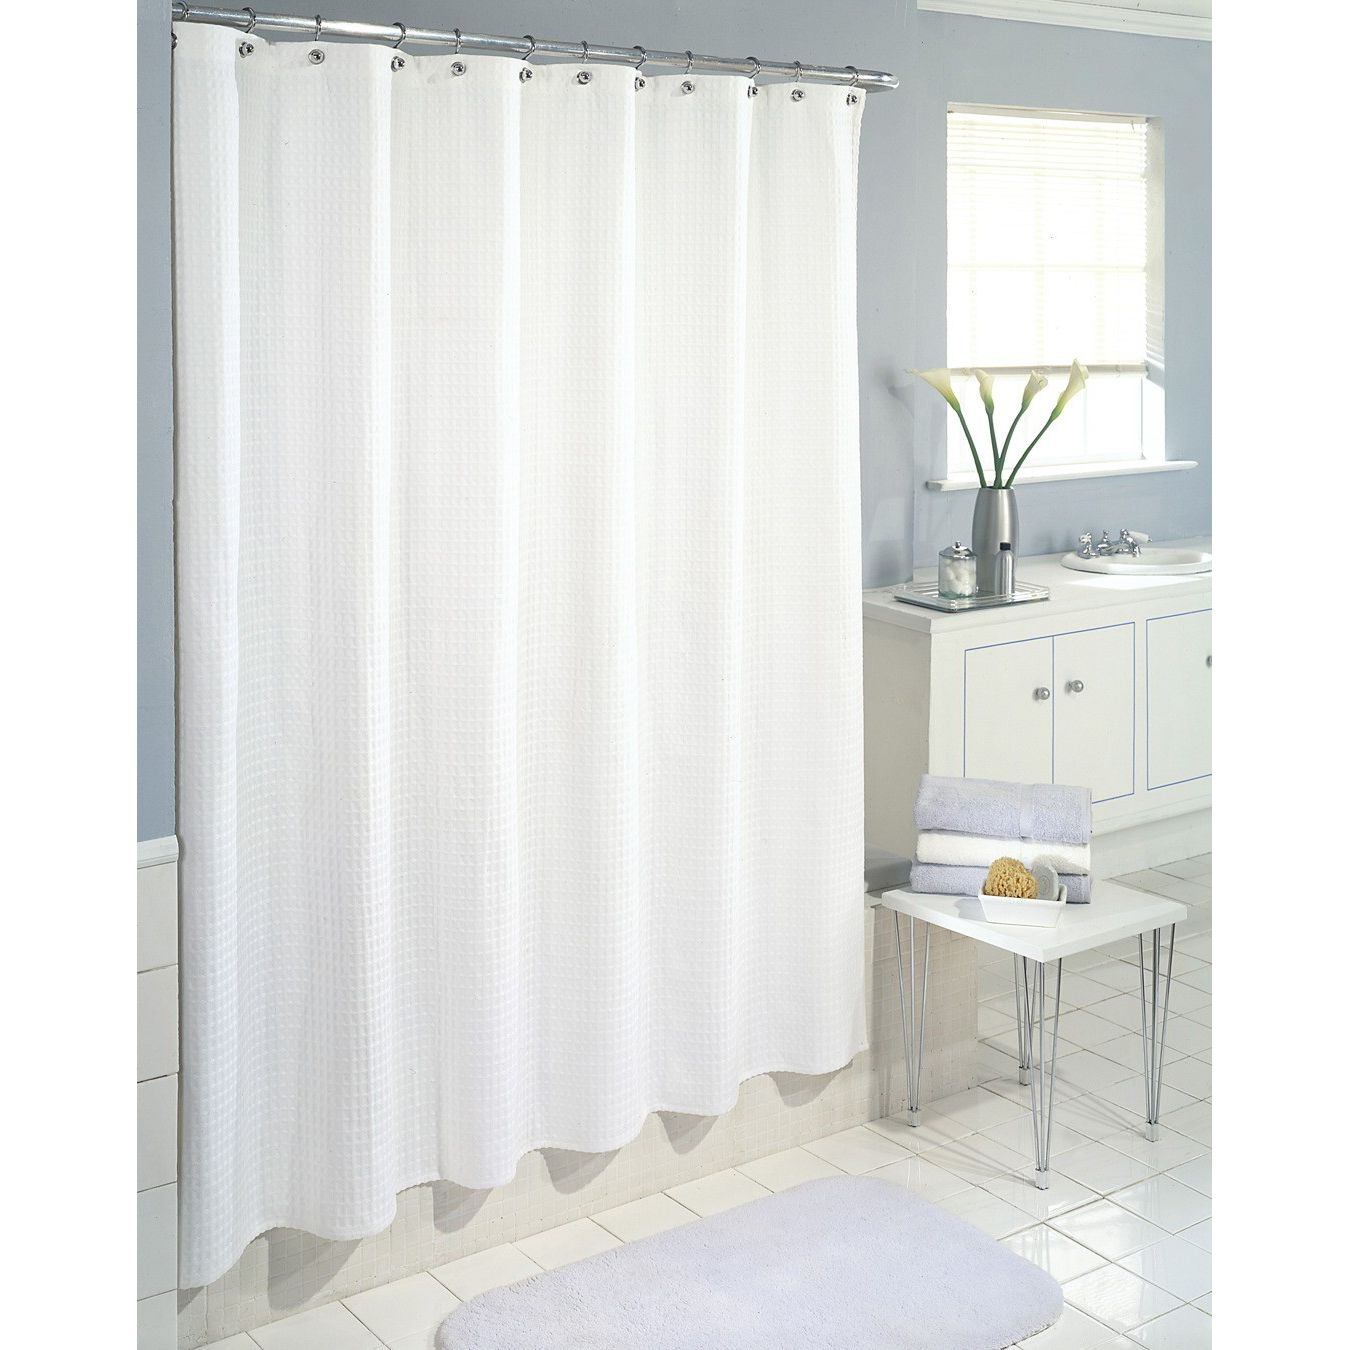 Bath Shower Wonderful Fabric Shower Curtains For Bathroom Within Hookless Fabric Shower Curtain Liner (Image 5 of 25)